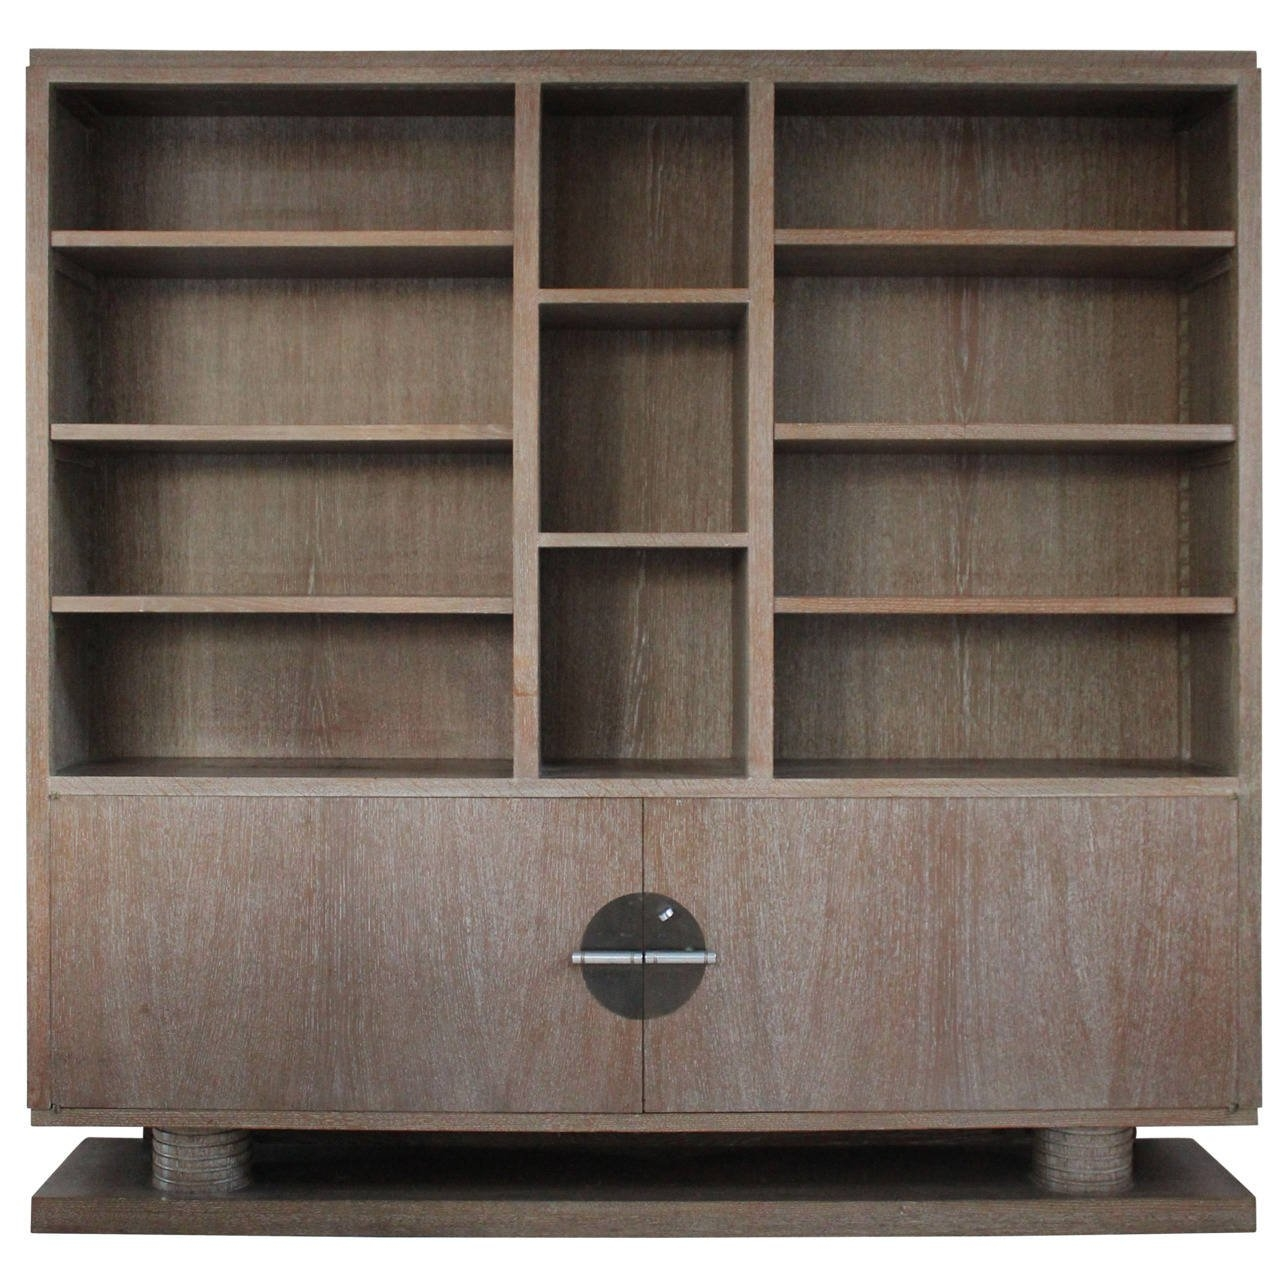 Cerused Oak Bookcaseshelving Unit France 1930s At 1stdibs Regarding Oak Bookcase (#3 of 8)